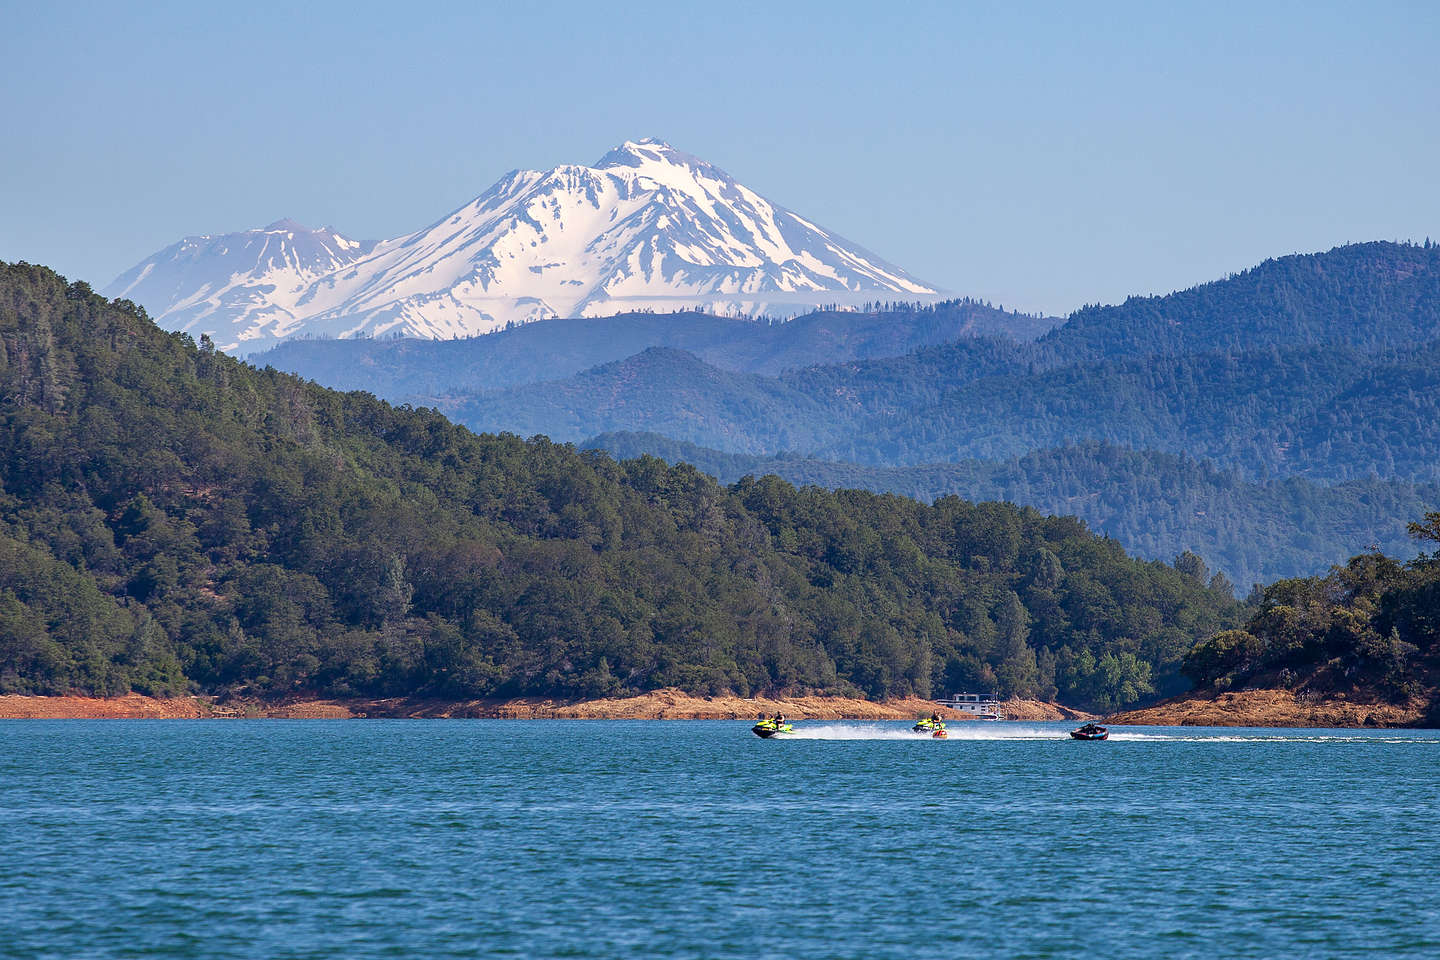 View of Mt. Shasta from our campsite on Slaughterhouse Island